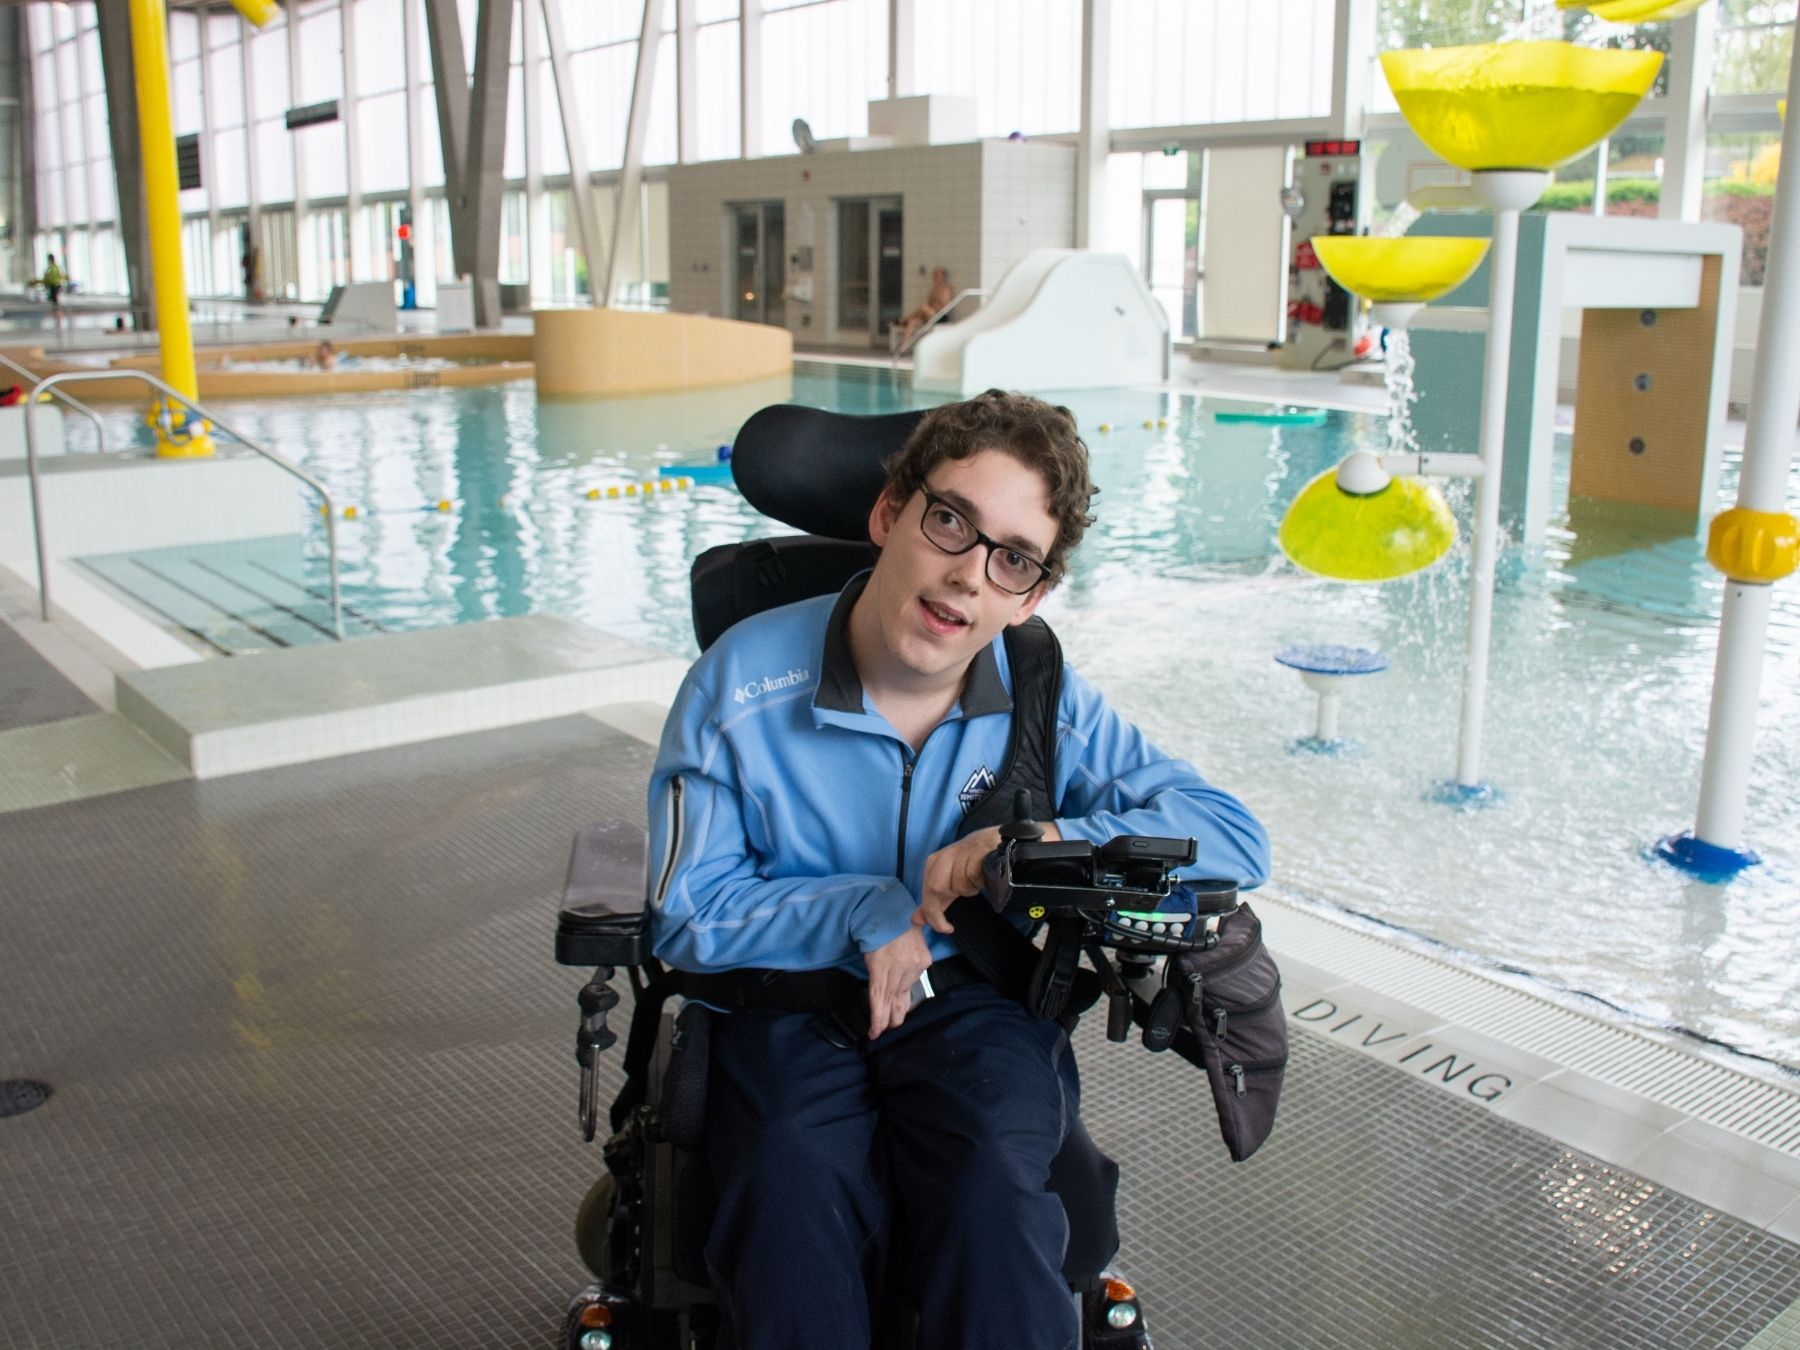 A man in a wheelchair at a swimming pool